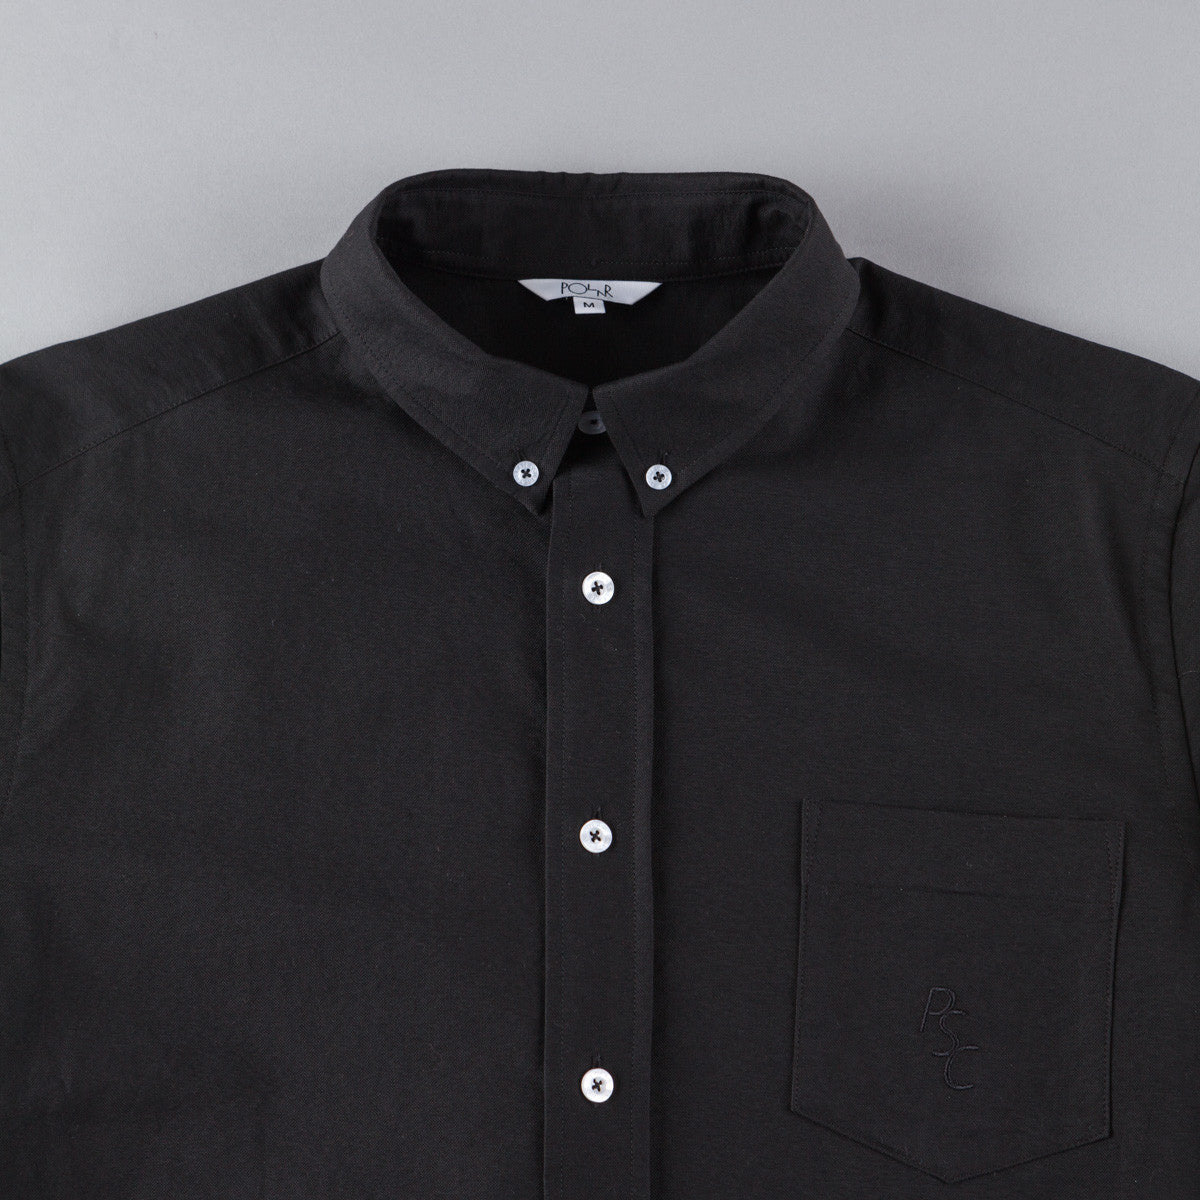 Polar PSC Long Sleeve Shirt - Black